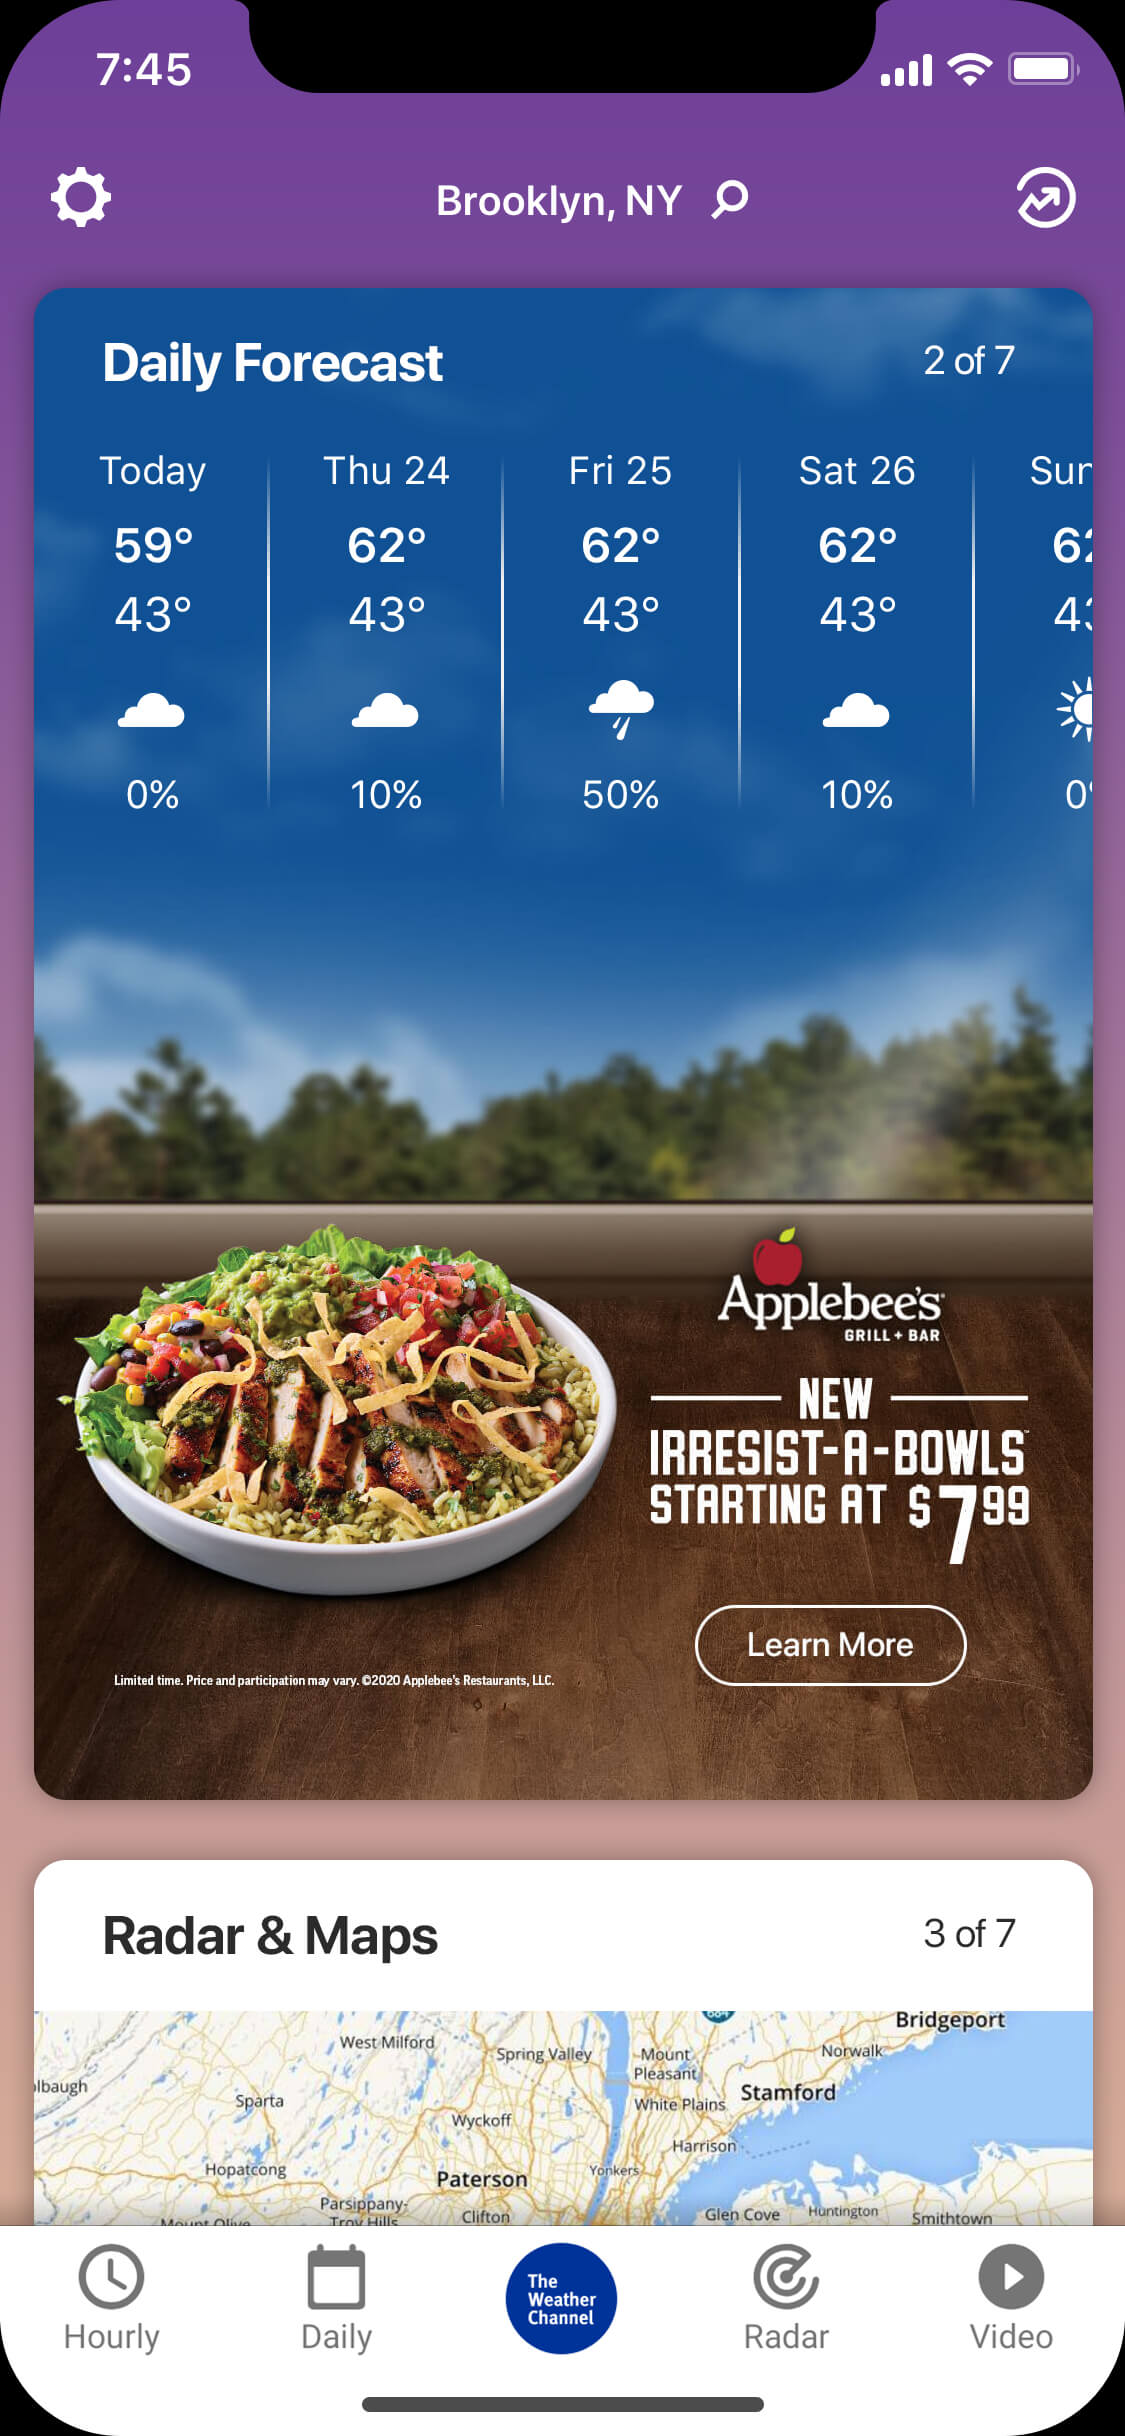 applebees-bowls-if_cloudy-day